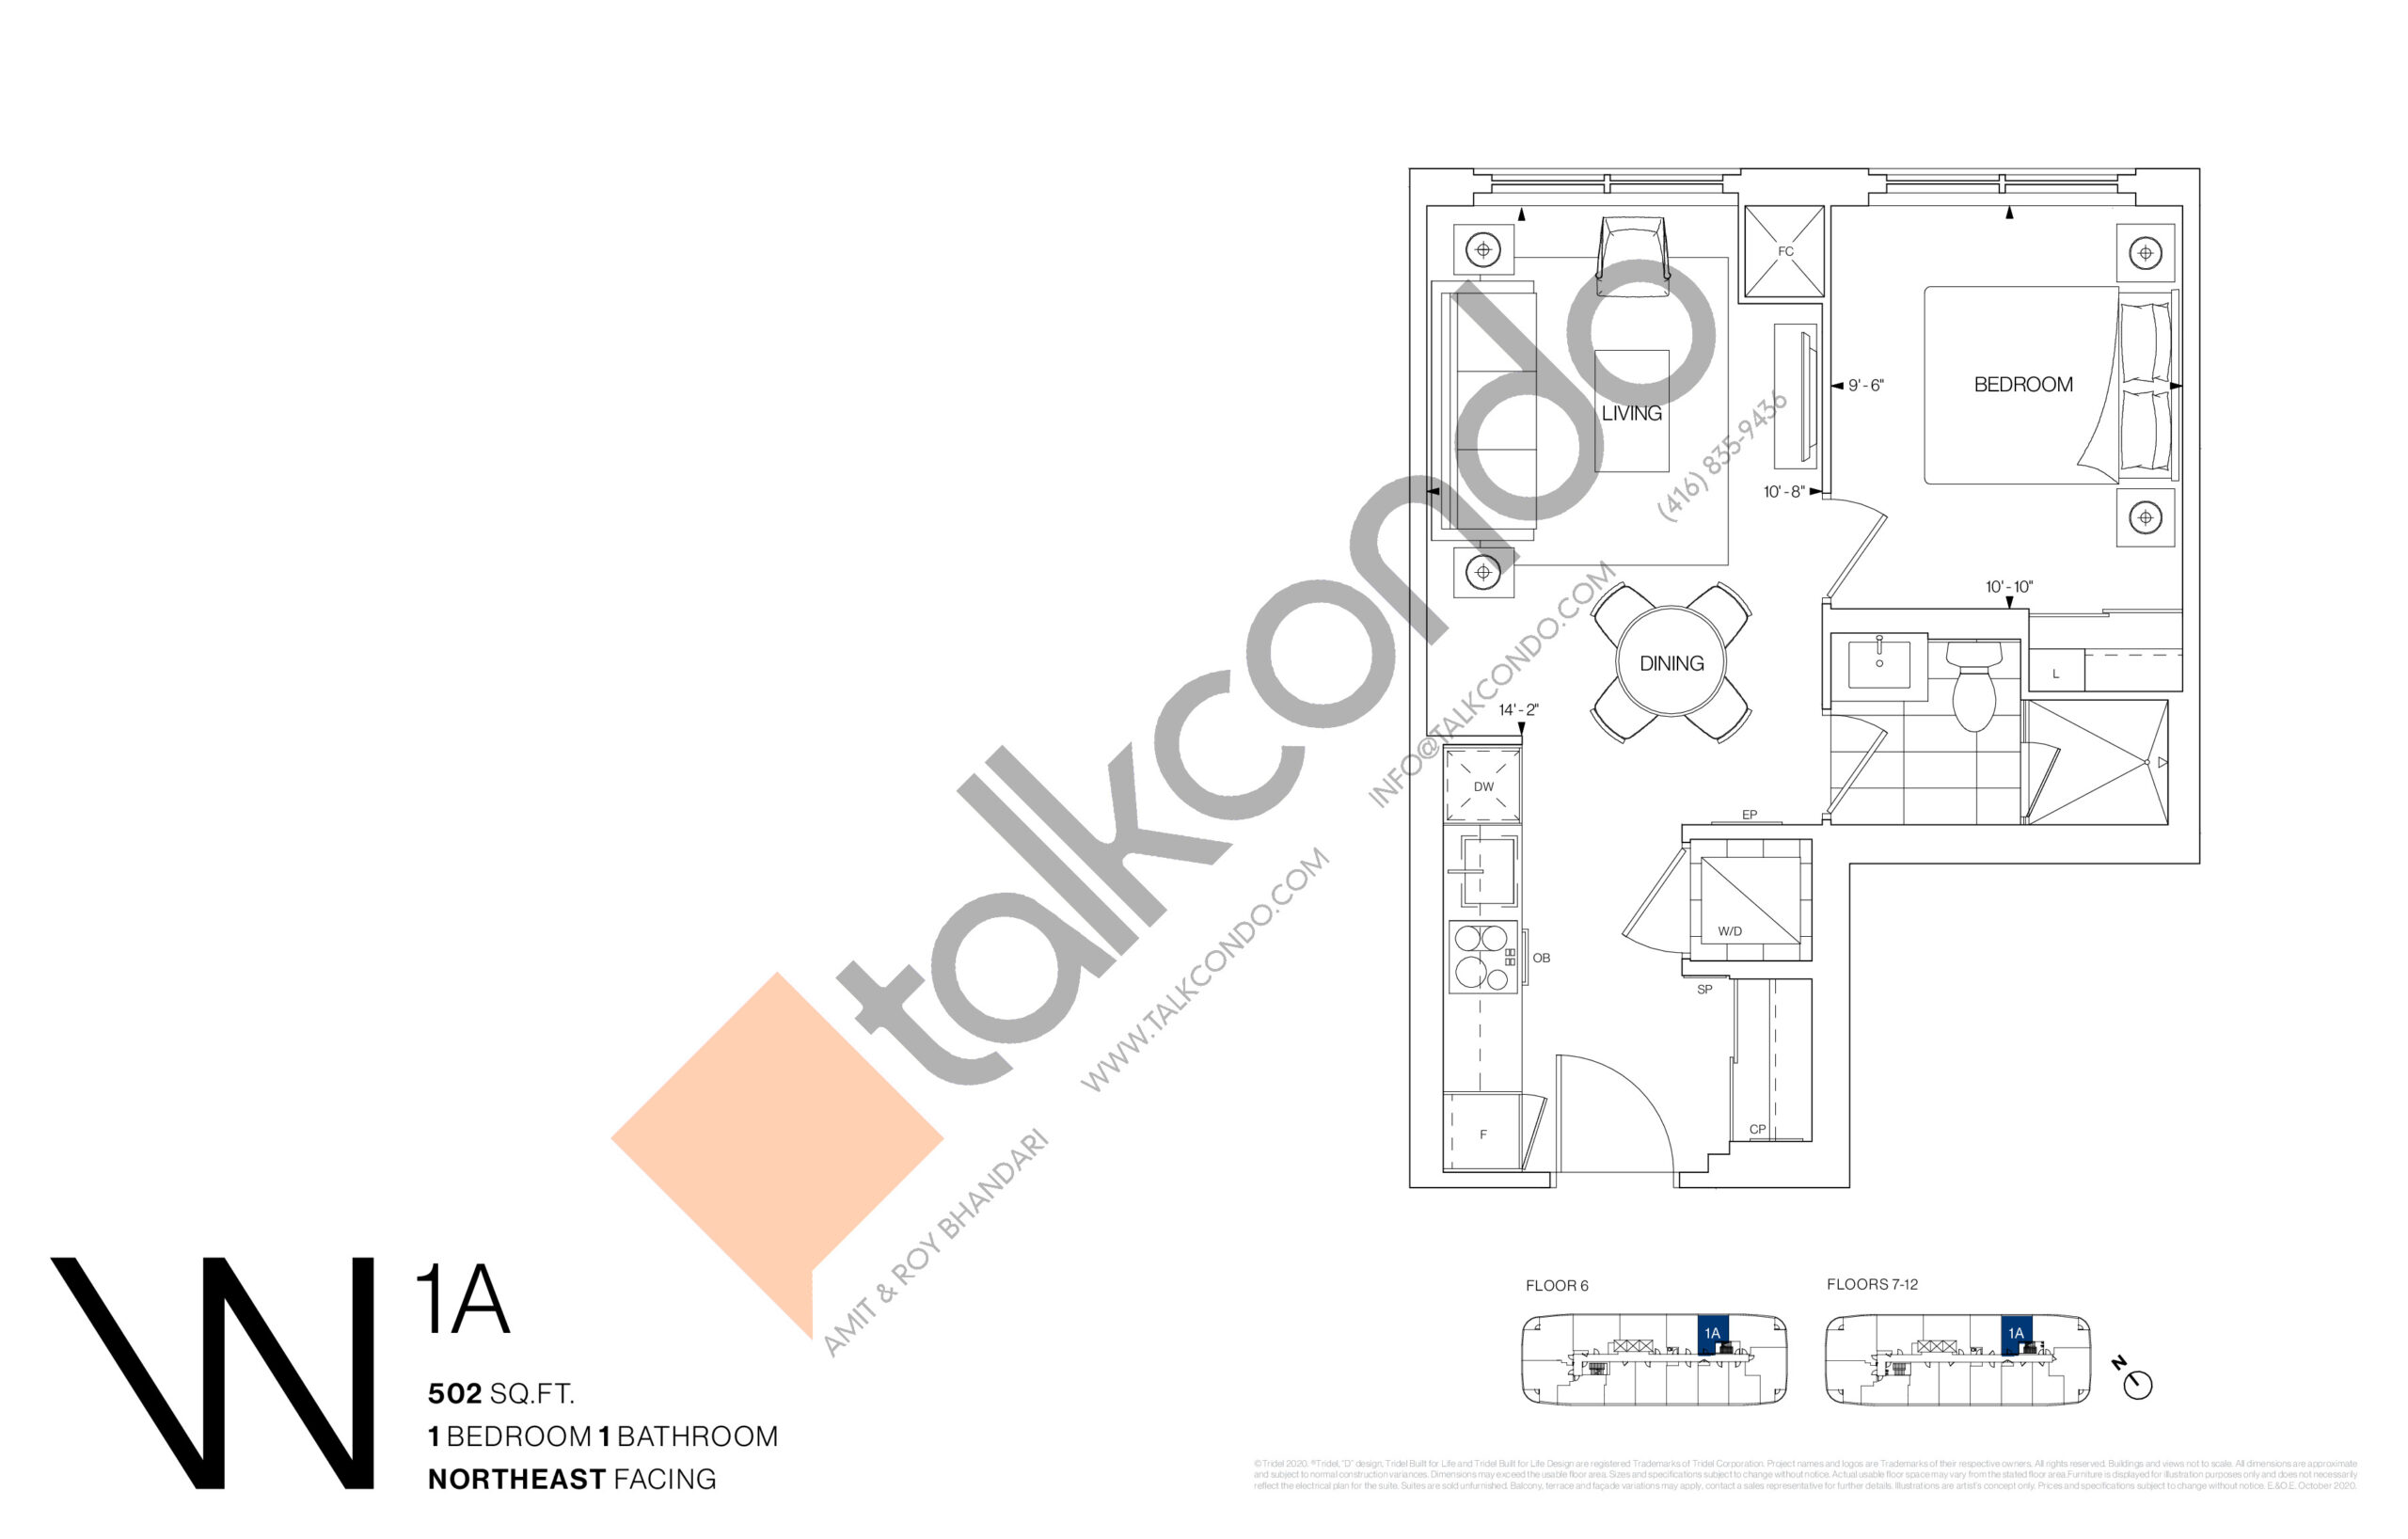 1A Floor Plan at Westerly Condos - 502 sq.ft